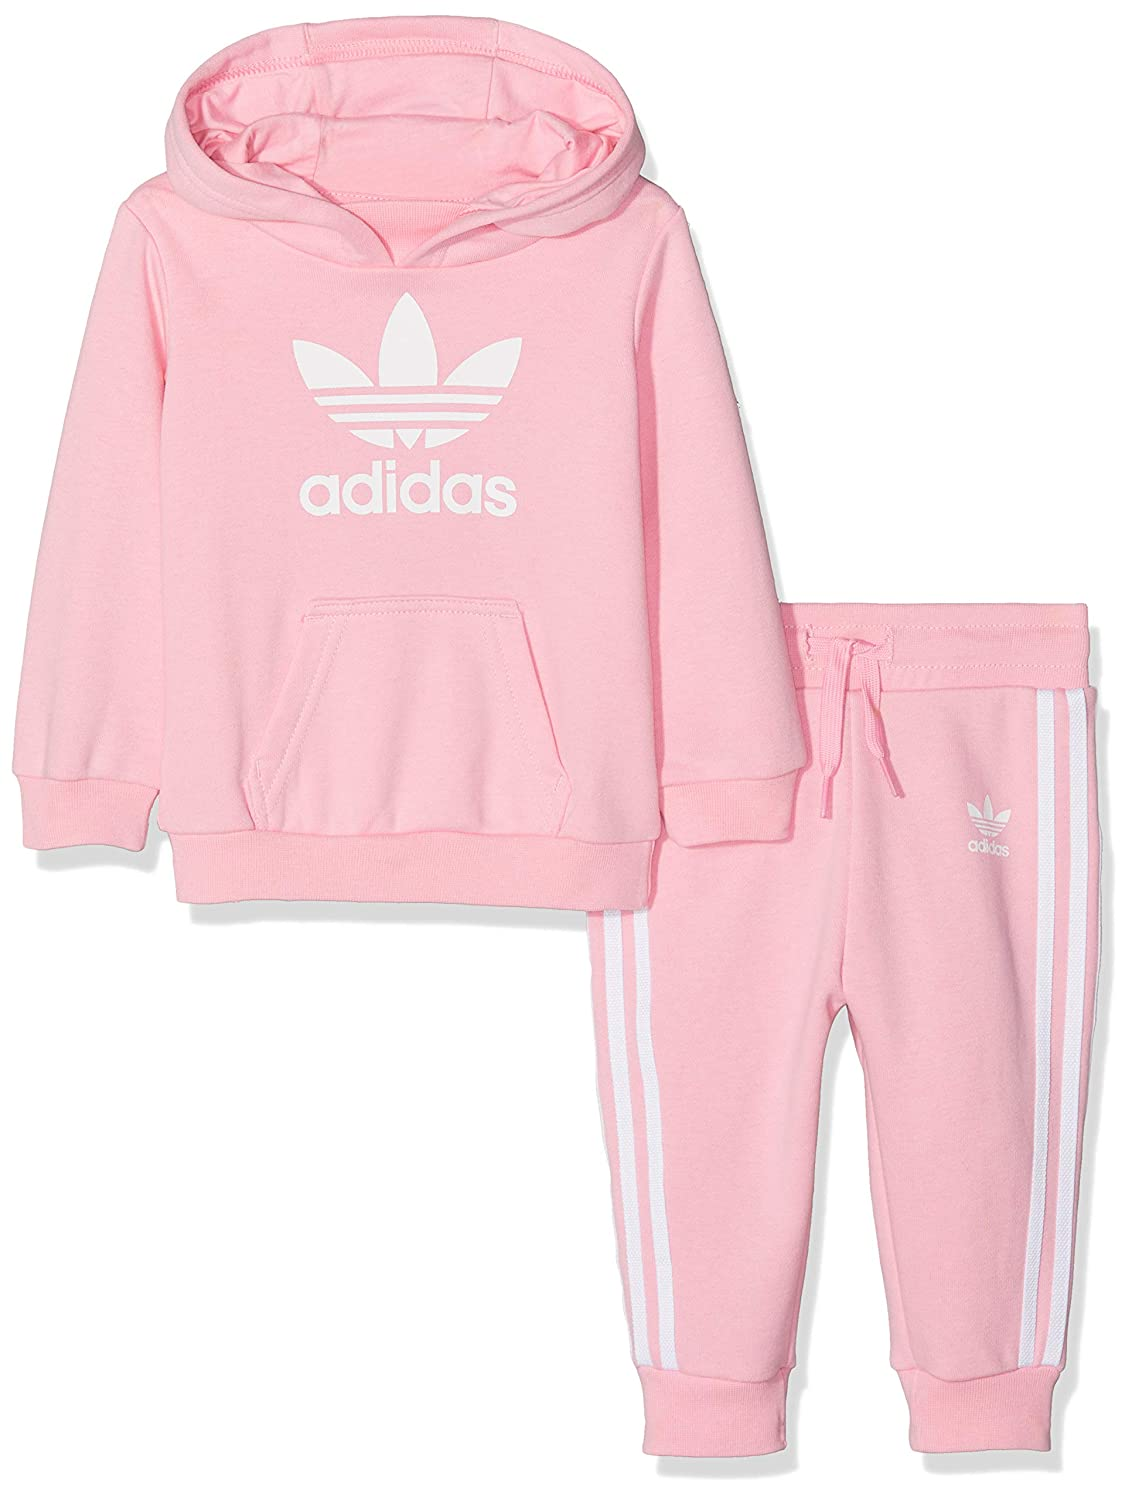 adidas trainingsanzug pink kinder